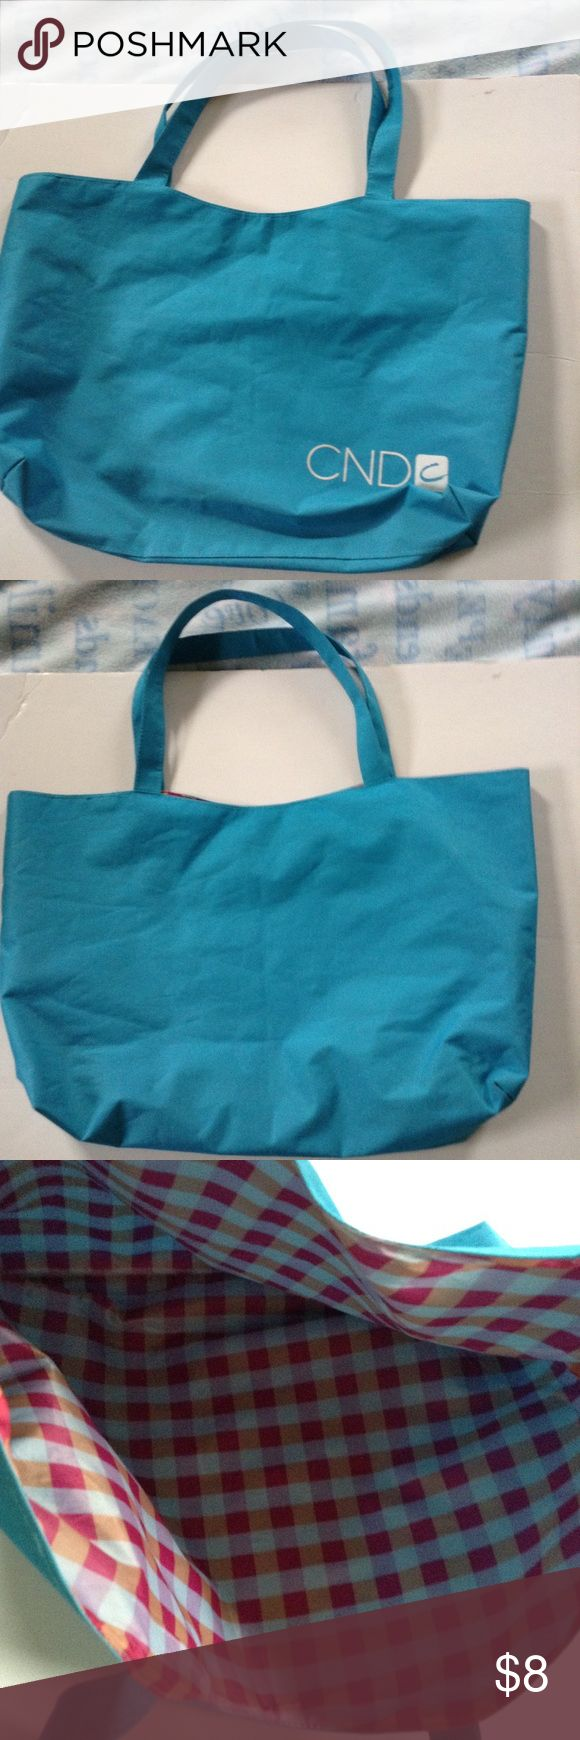 Blue Tote Bag Great to throw in your things when in a hurry! 🏃🏼🏃🏼 Bags Totes